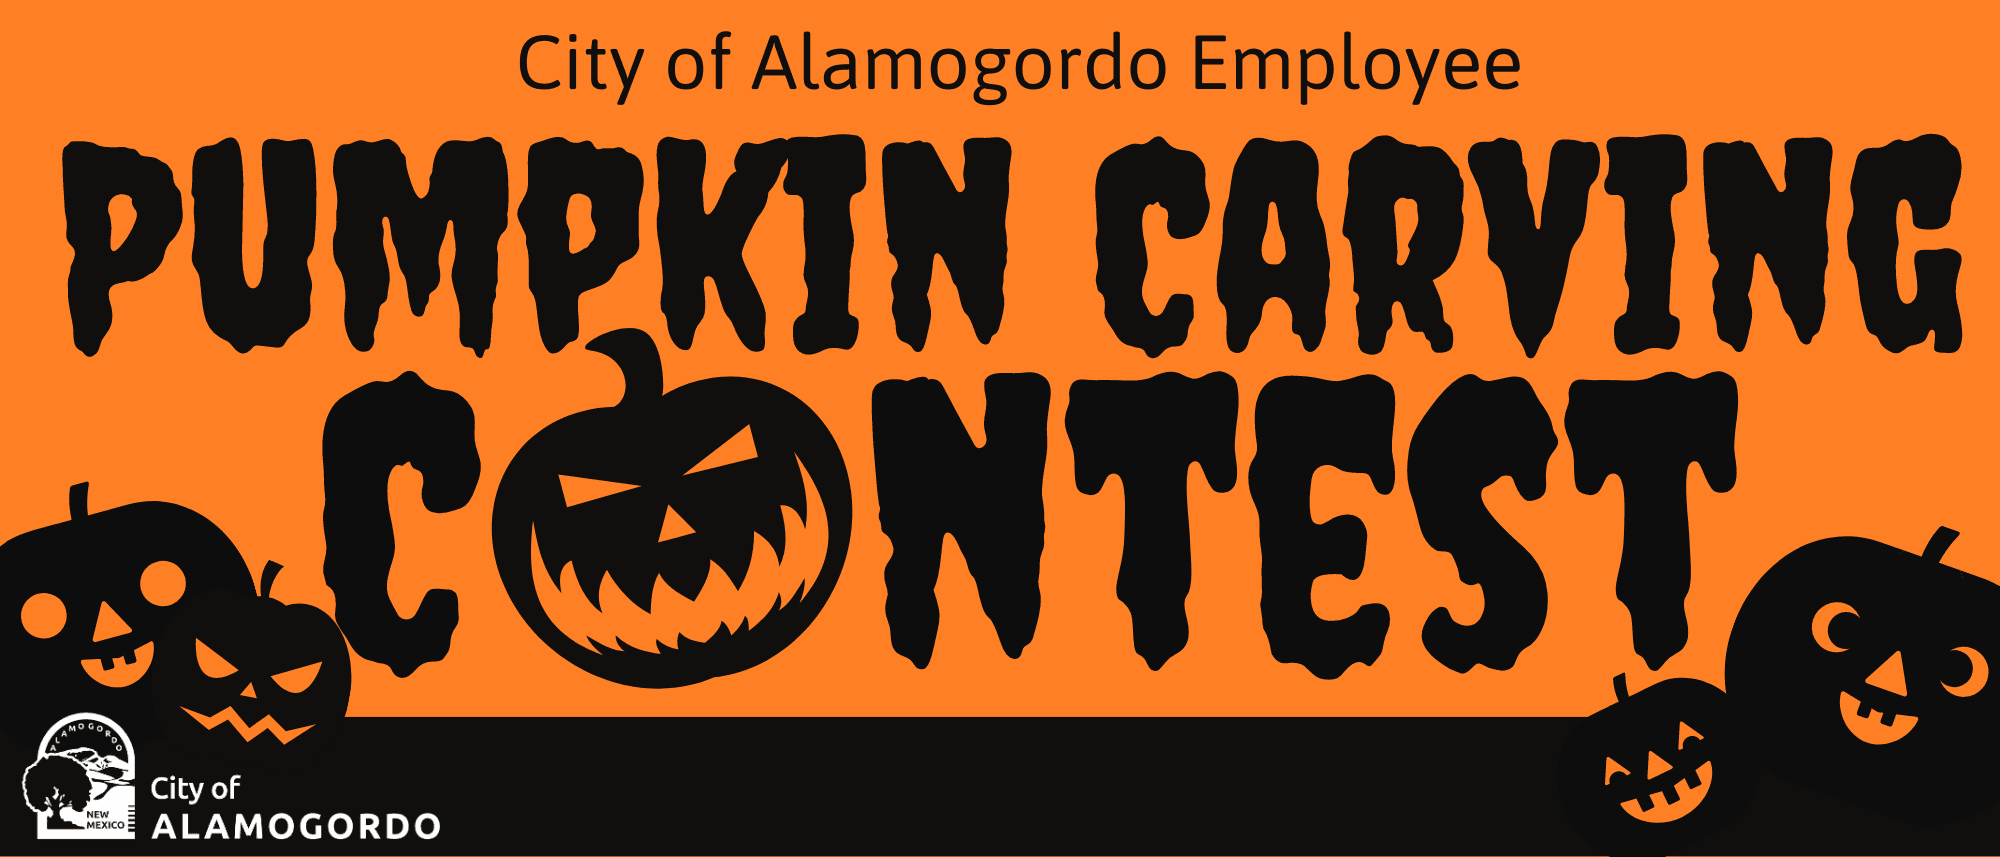 Pumpkin Carving Contest Graphic